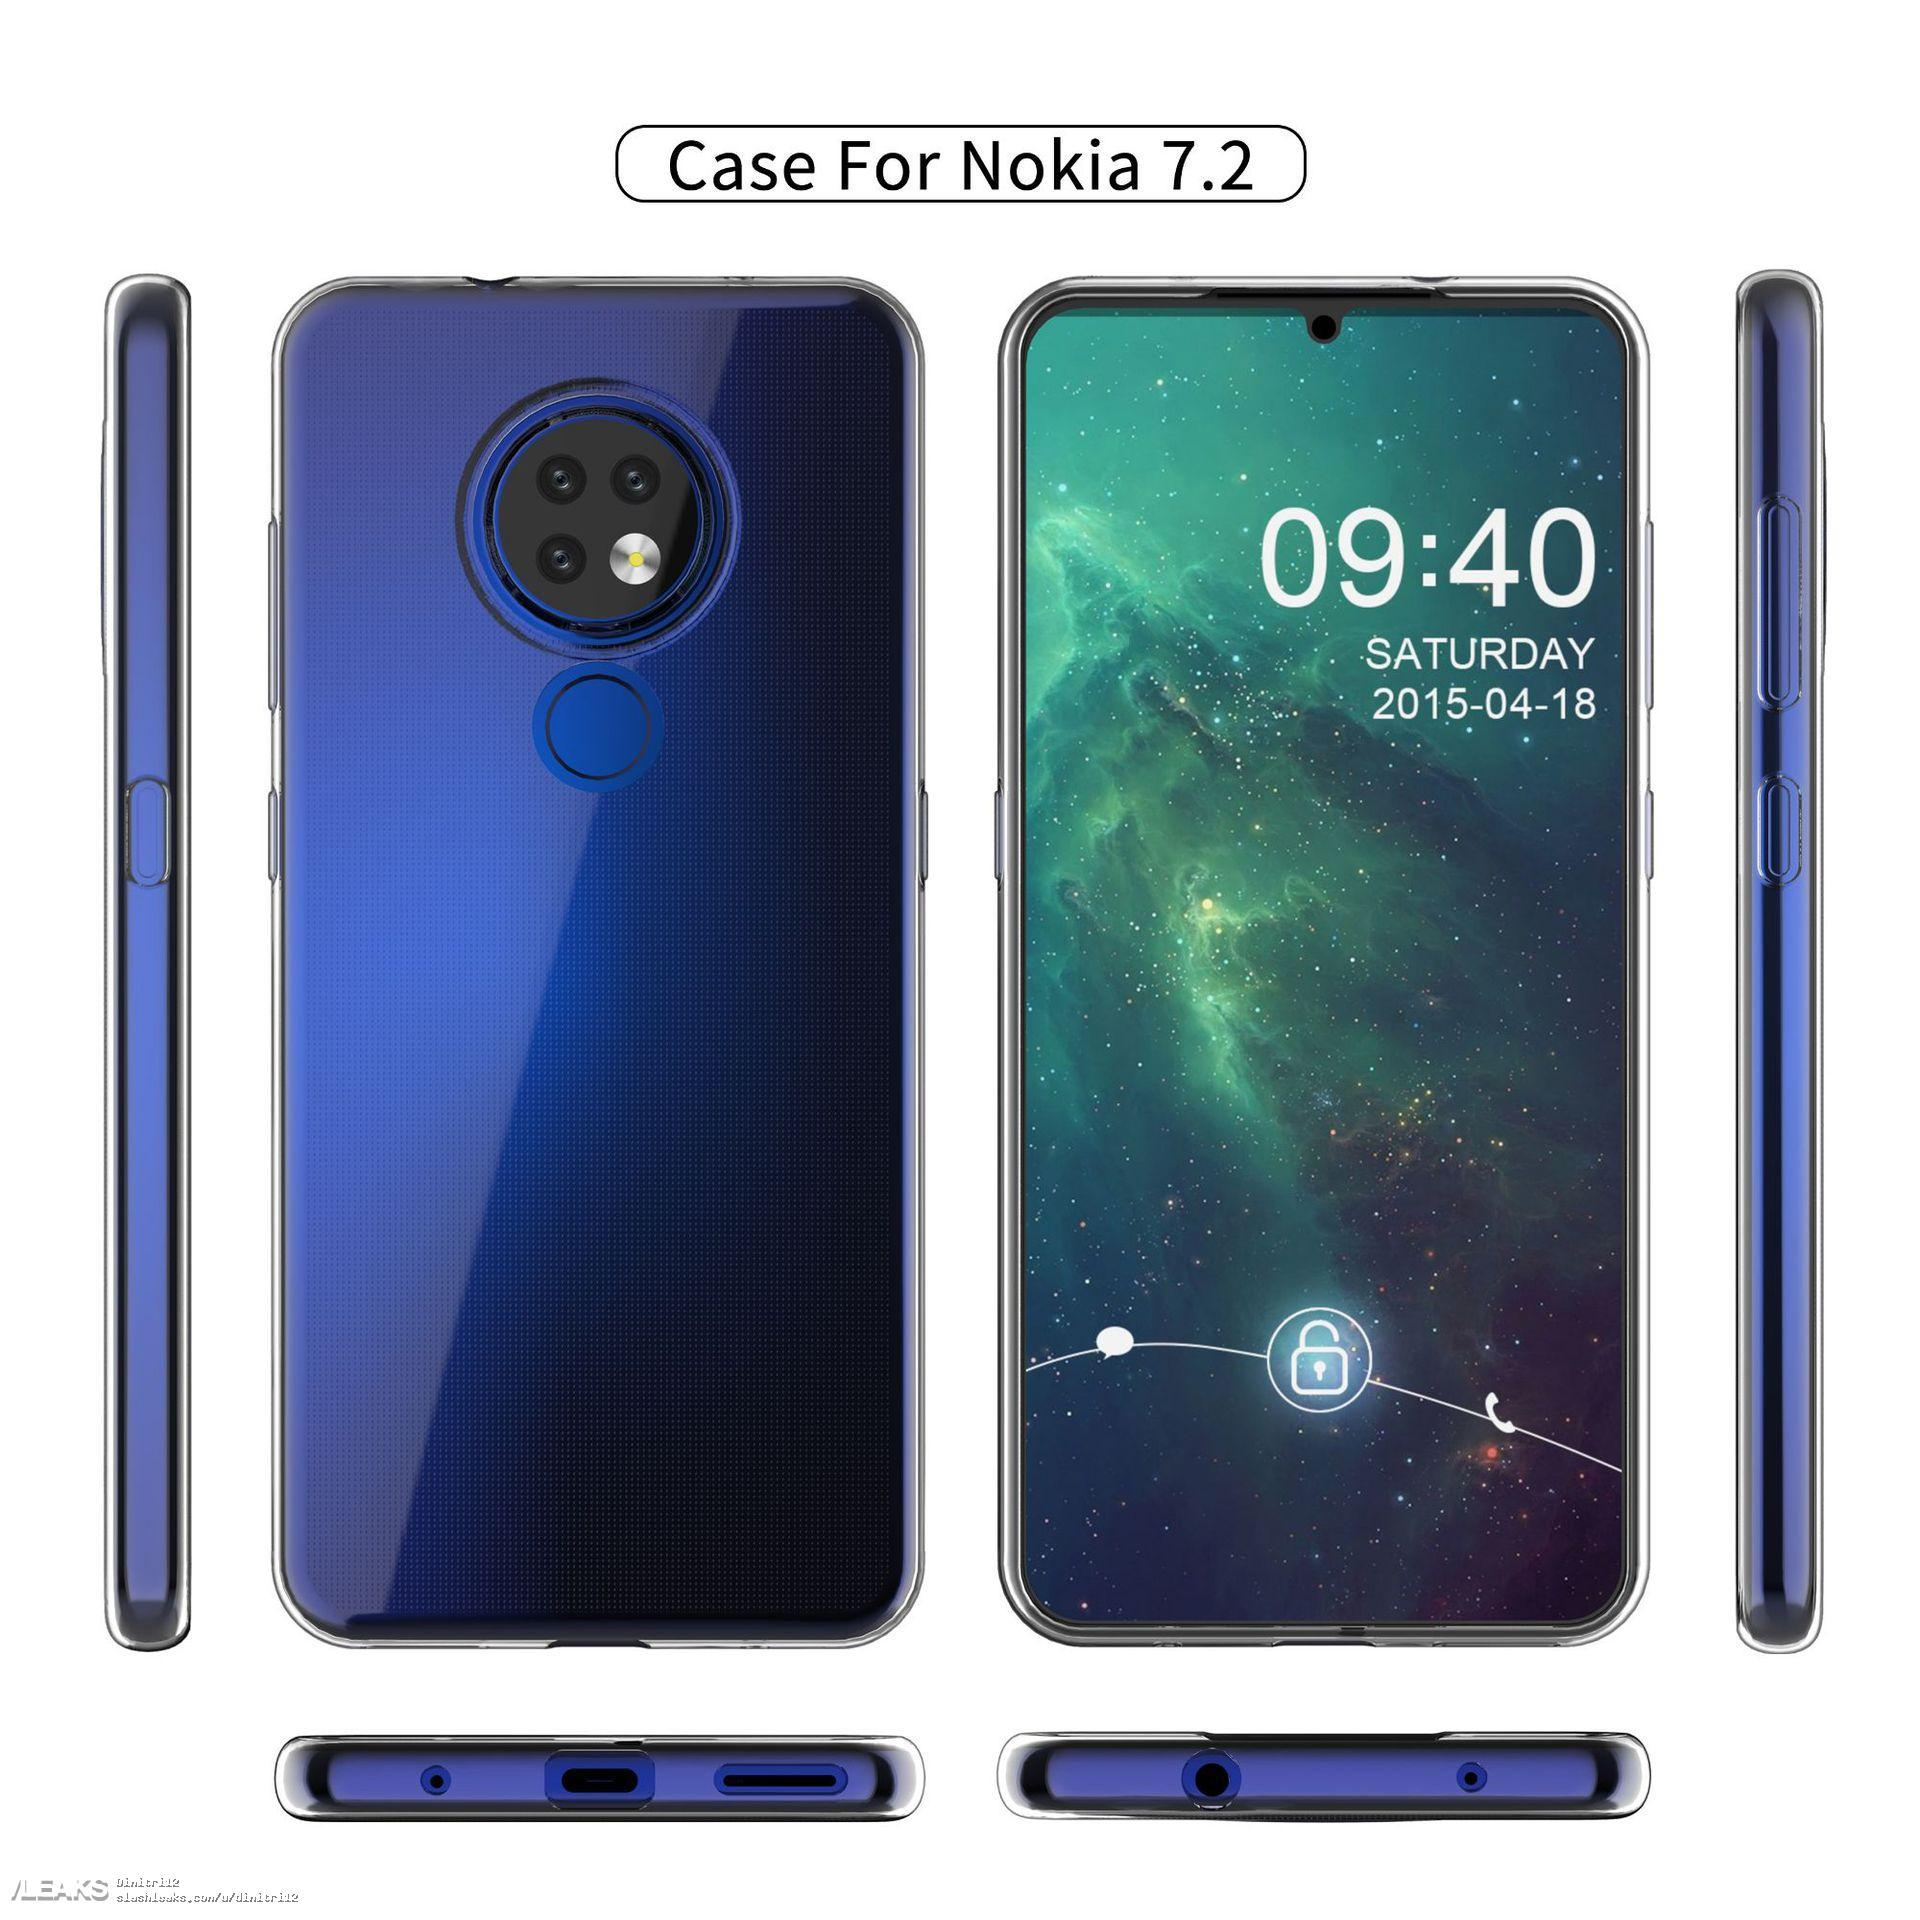 alleged nokia 7.2 ta 1198 case matches previously leaked design 99-円形配置のトリプルリアカメラは「Nokia 7.2」の可能性。一部スペックがリークされました